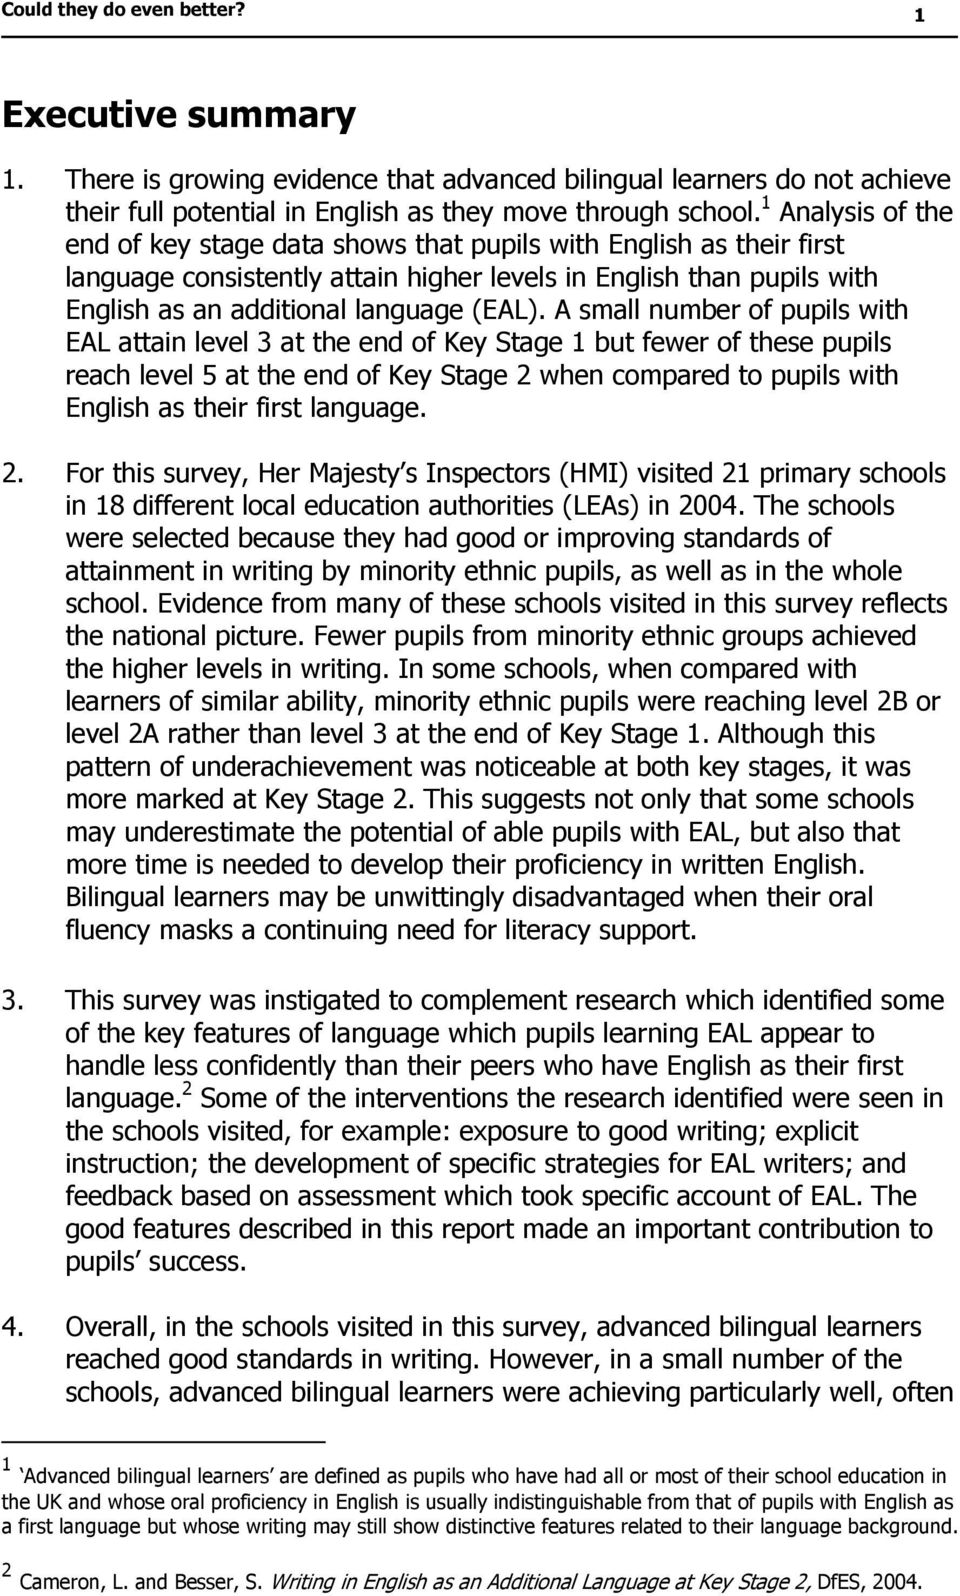 A small number of pupils with EAL attain level 3 at the end of Key Stage 1 but fewer of these pupils reach level 5 at the end of Key Stage 2 when compared to pupils with English as their first